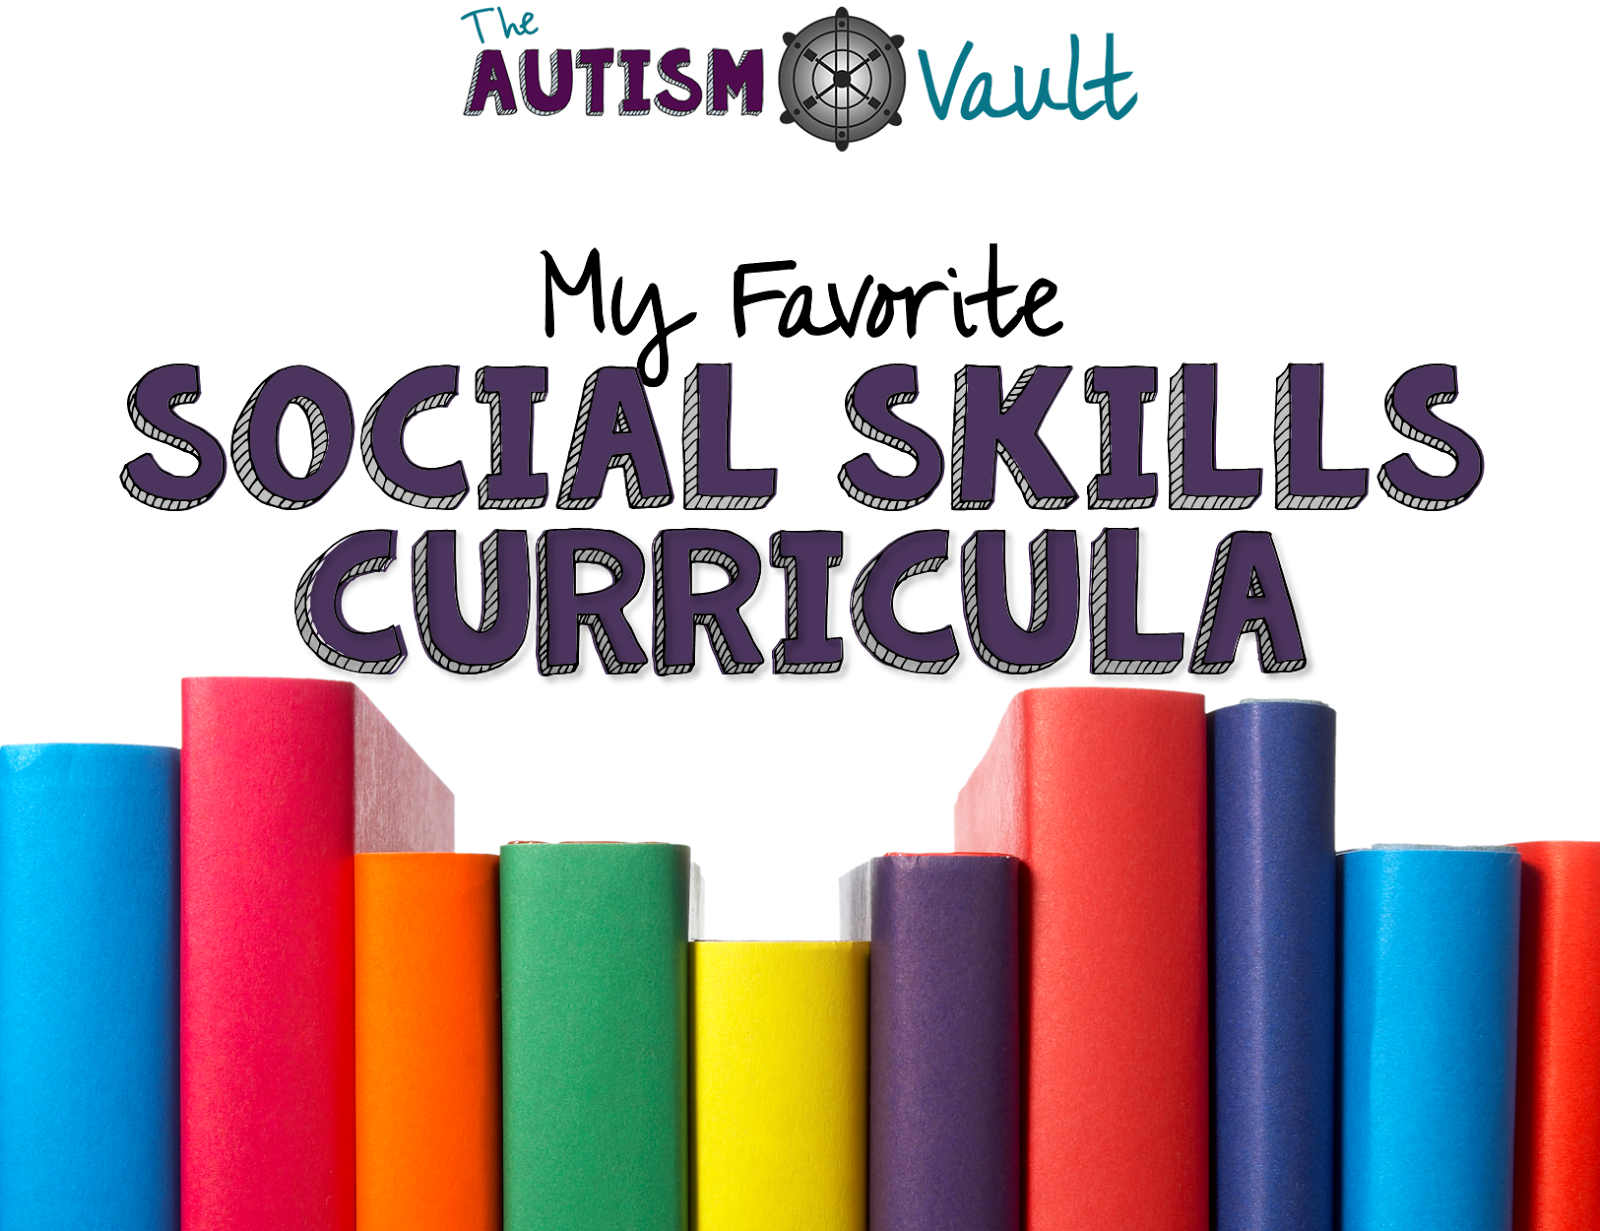 My 5 Favorite Social Skills Curricula The Autism Vault